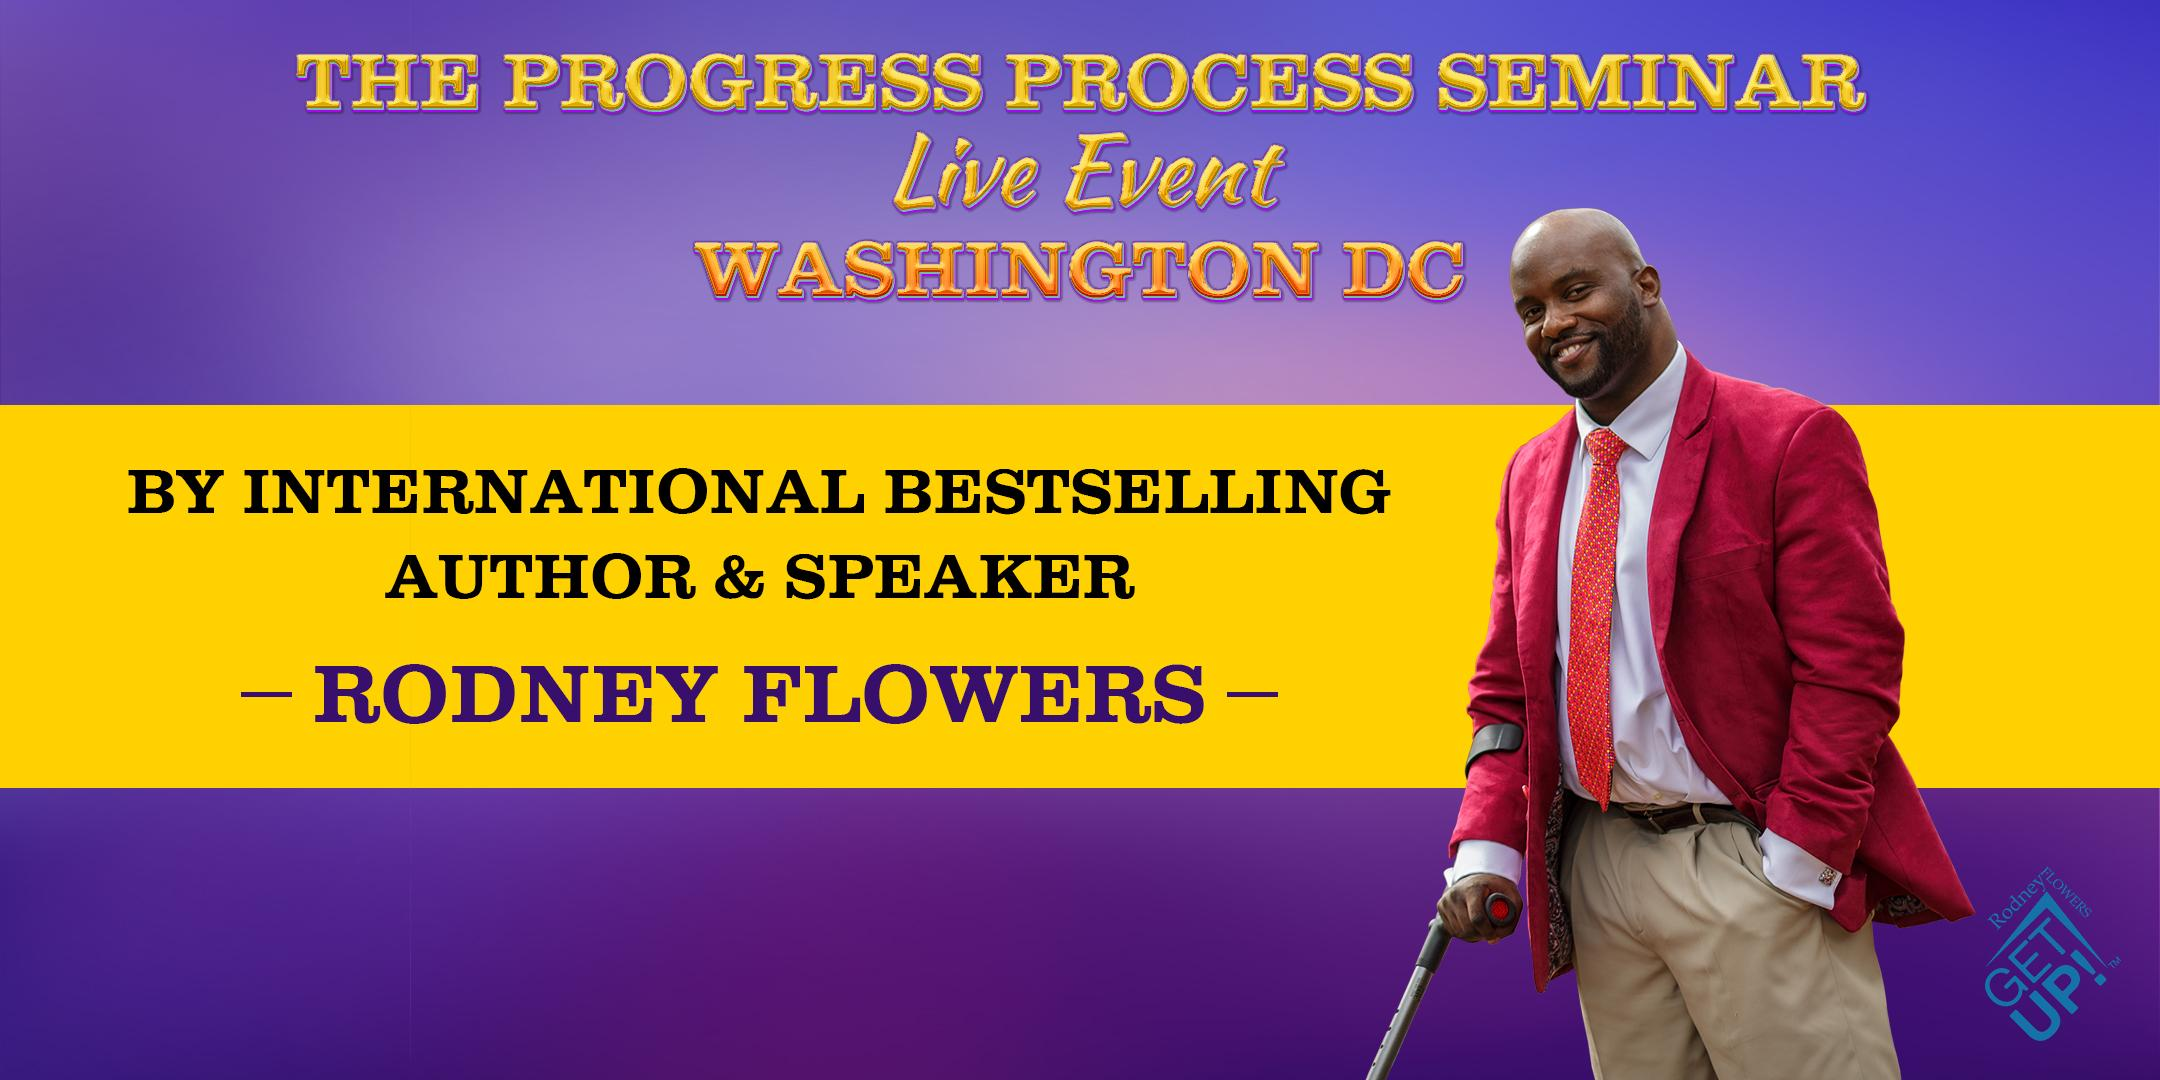 THE PROGRESS PROCESS SEMINAR WASHINGTON DC